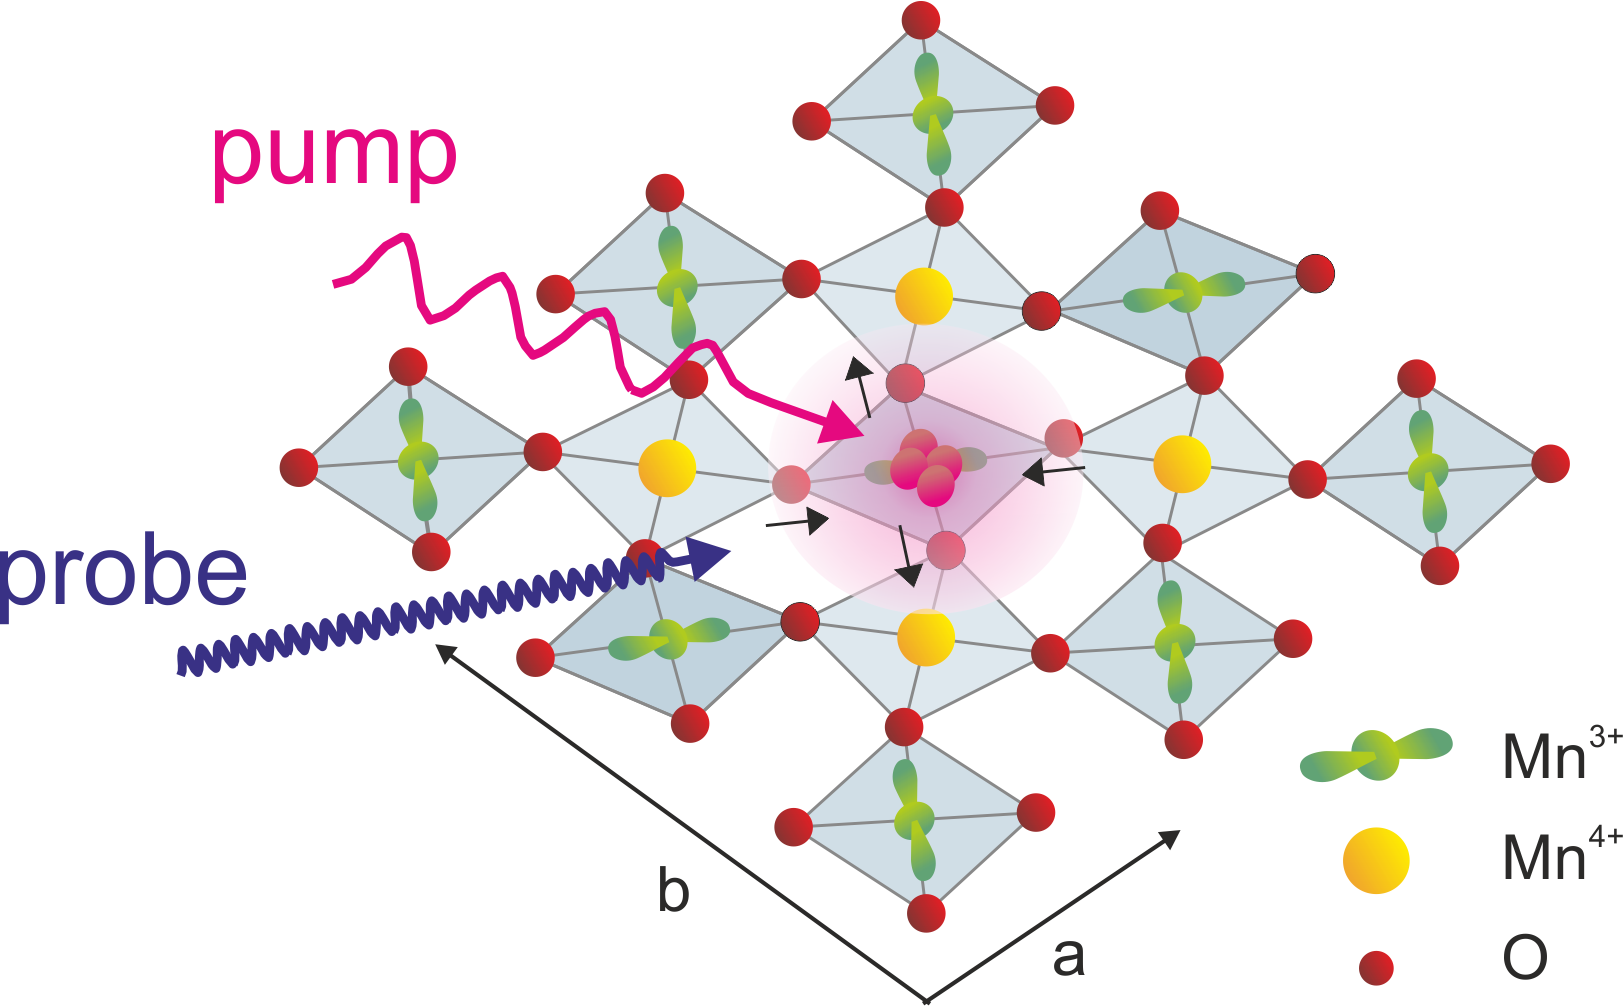 The principle of the experiment described. At the beginning the manganese atoms occur in three different states which correspond to the various electron states – orbitals (spherical – yellow – or dumbbell-shaped with two different orientations – green). A laser pump excites the electrons. An x-ray laser probe examines the different states.